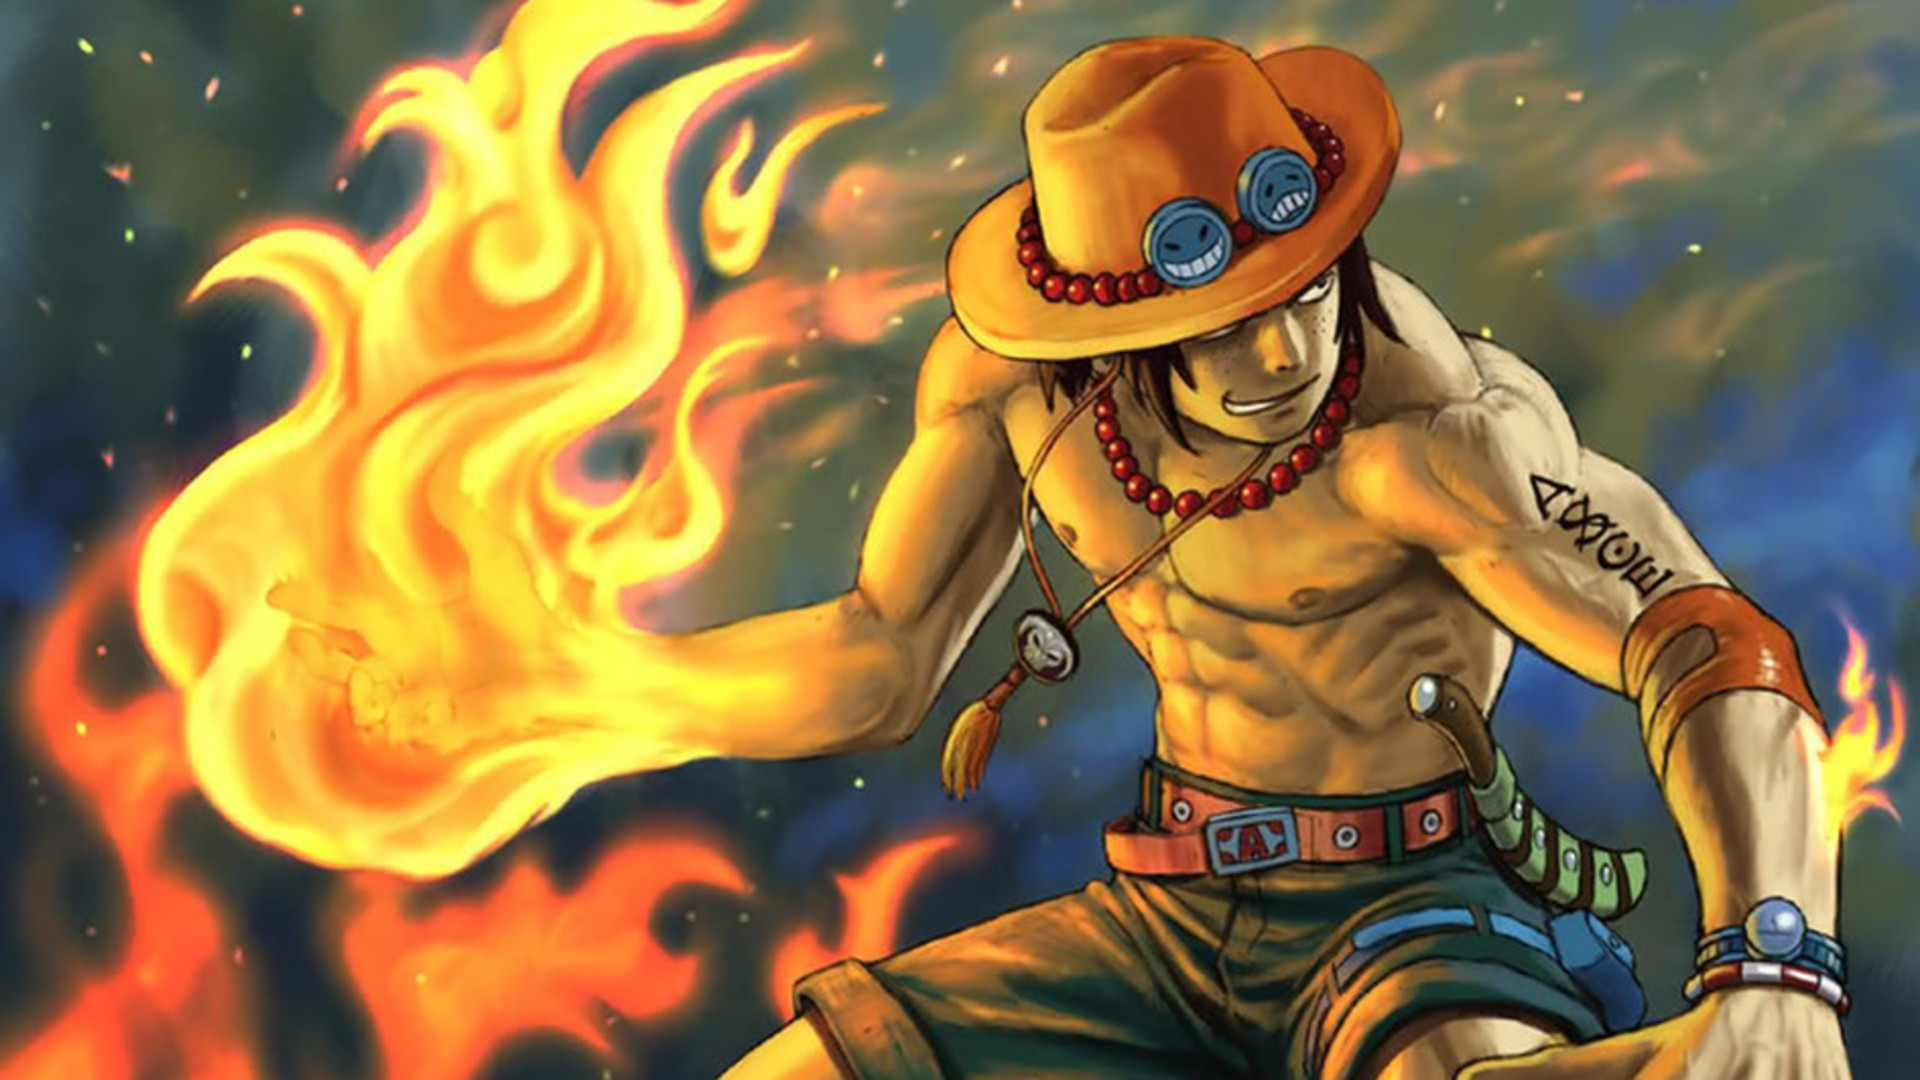 One Piece Wallpaper Iphone One Piece Full Hd Fond D 233 Cran And Arri 232 Re Plan